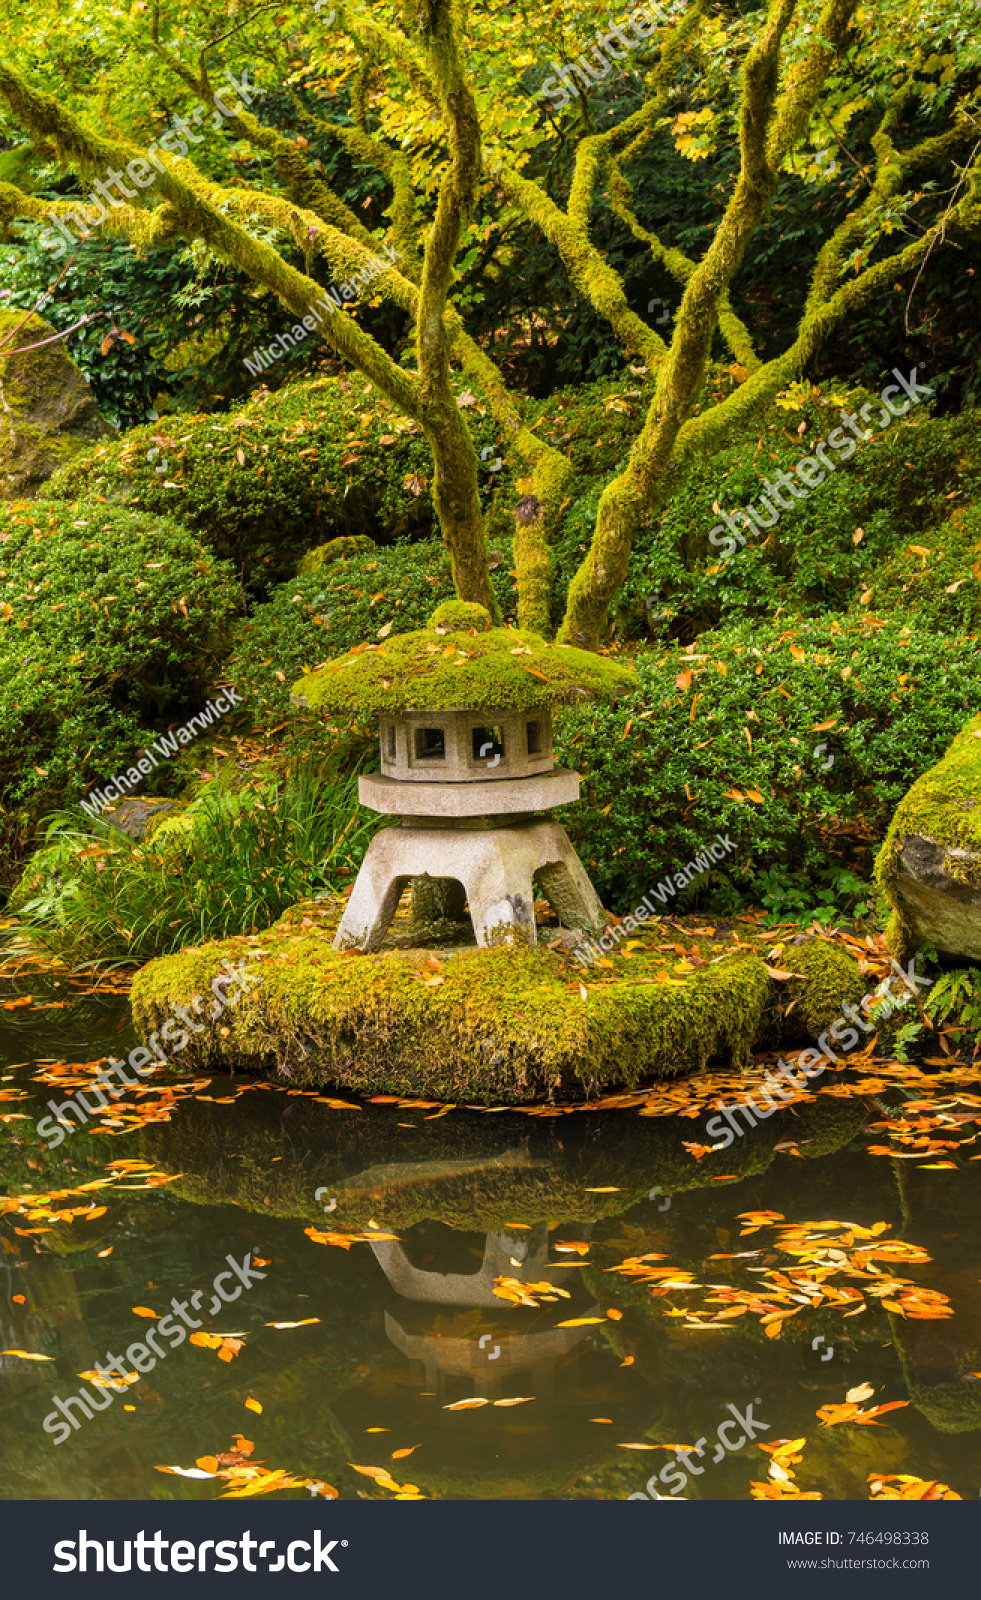 Japanese Zen Garden And Water Pond With Autumn Fallen Leaves